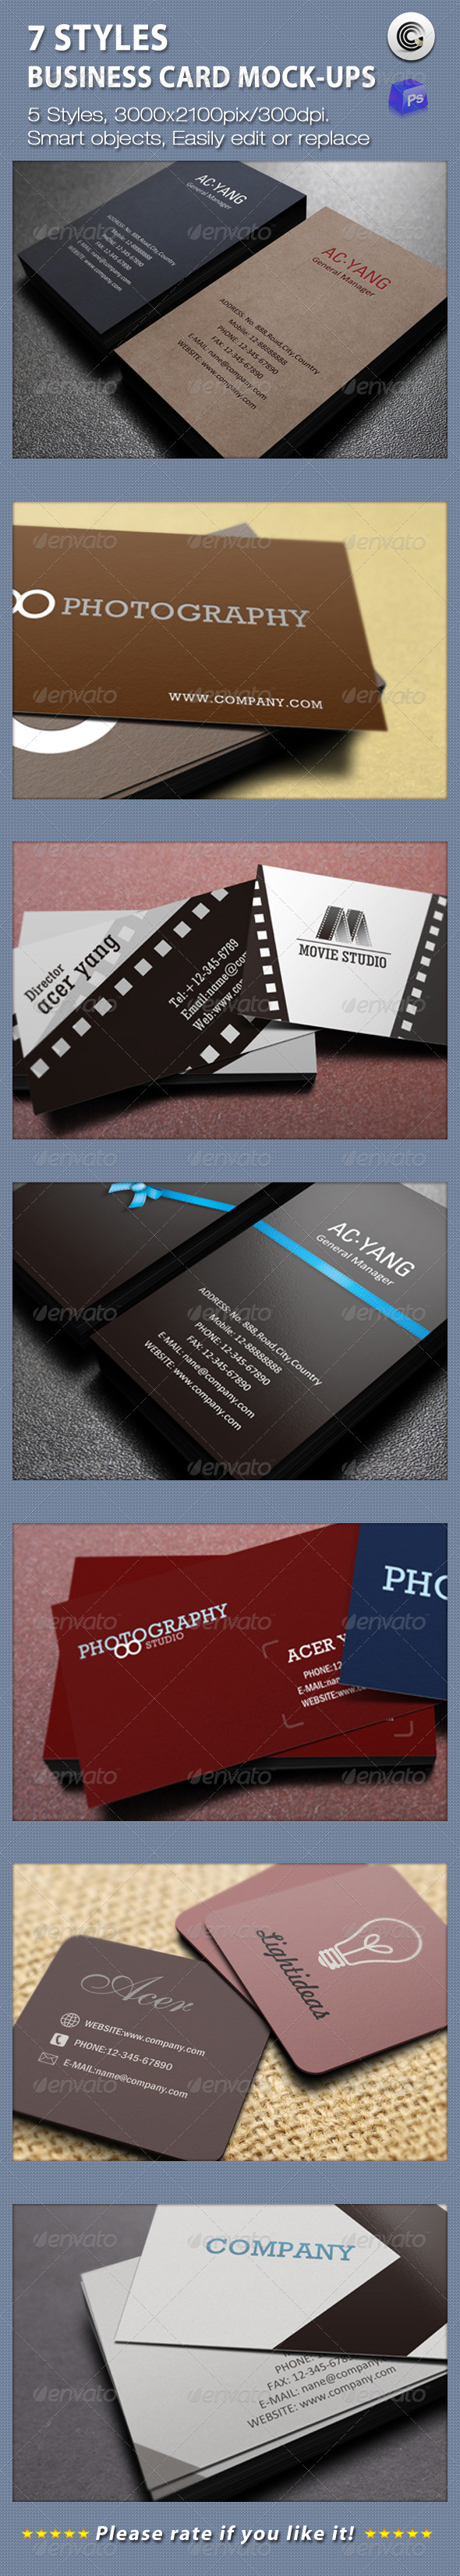 GraphicRiver 7 Styles Business Card Mock-ups 1673449